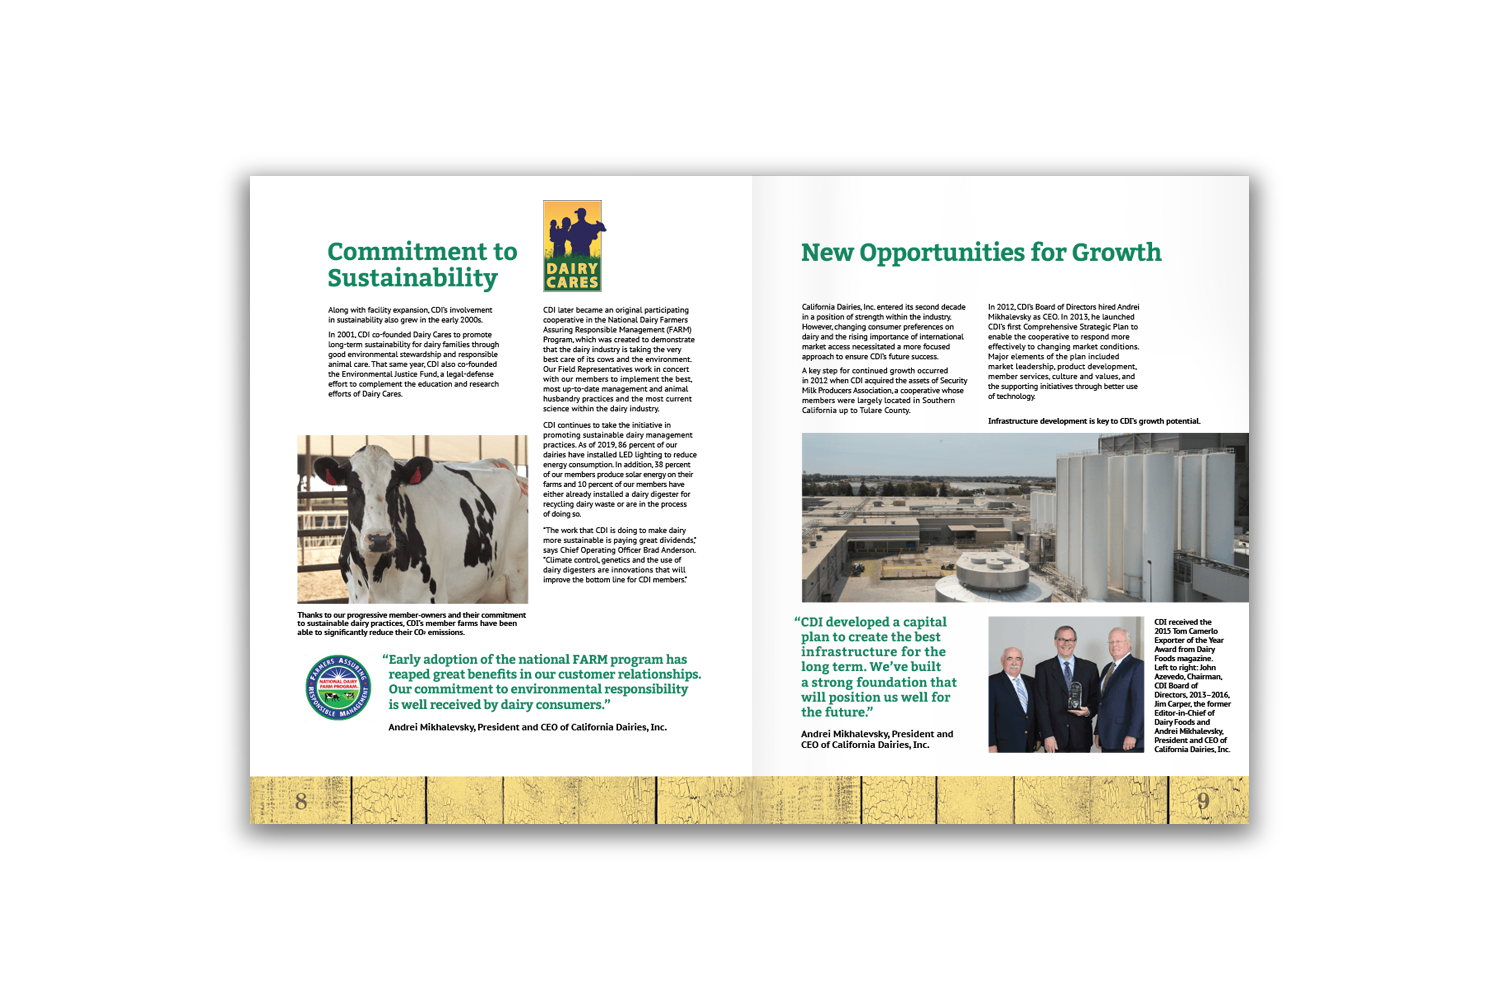 24-page corporate brochure for California Dairies - Pages 8 and 9